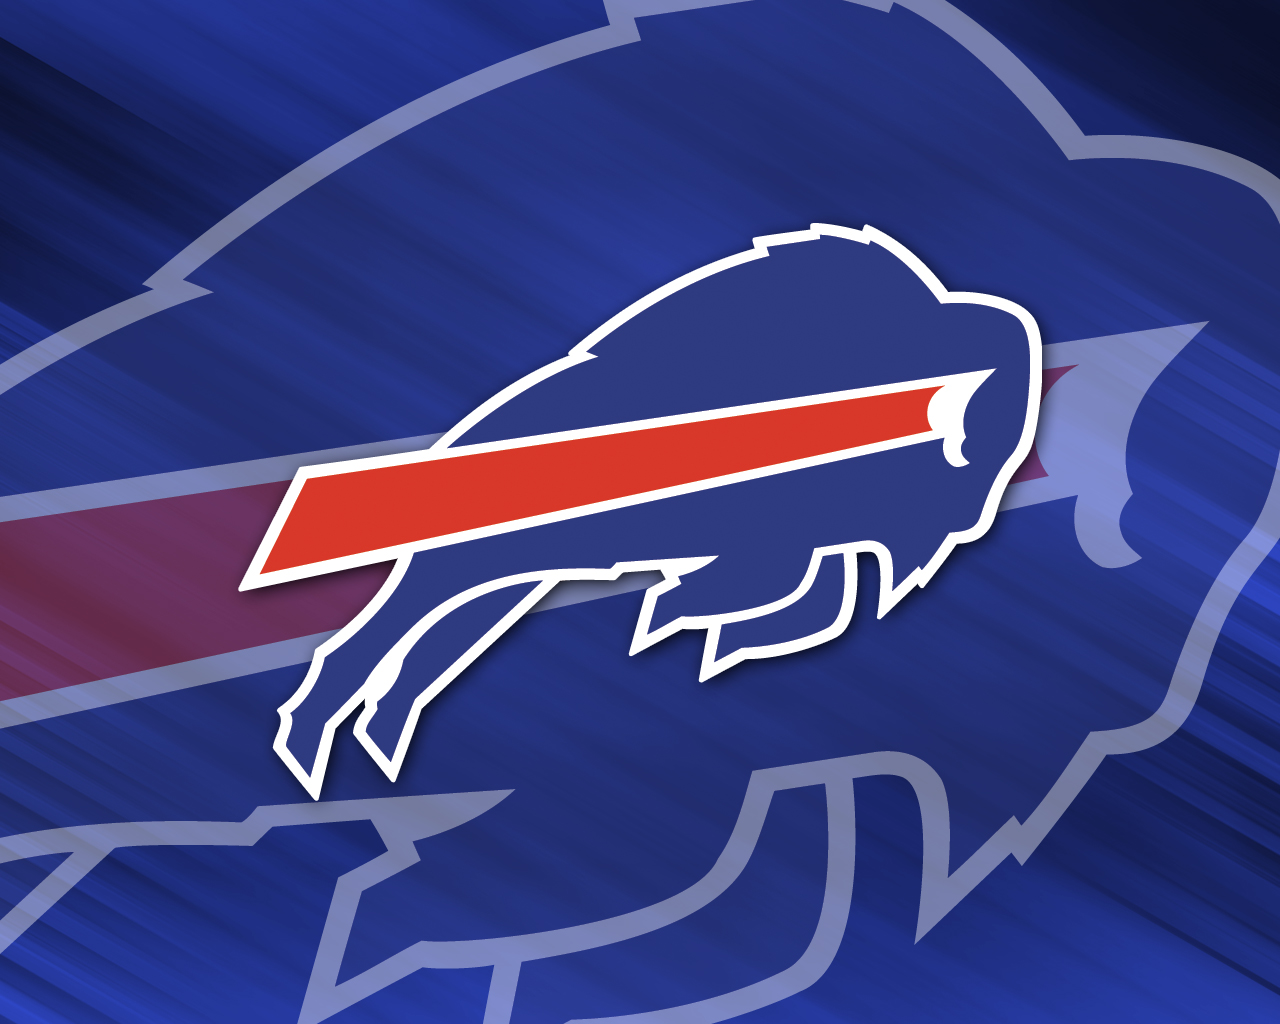 Hope you like this Buffalo Bills wallpaper background in high resolution as much as we do!